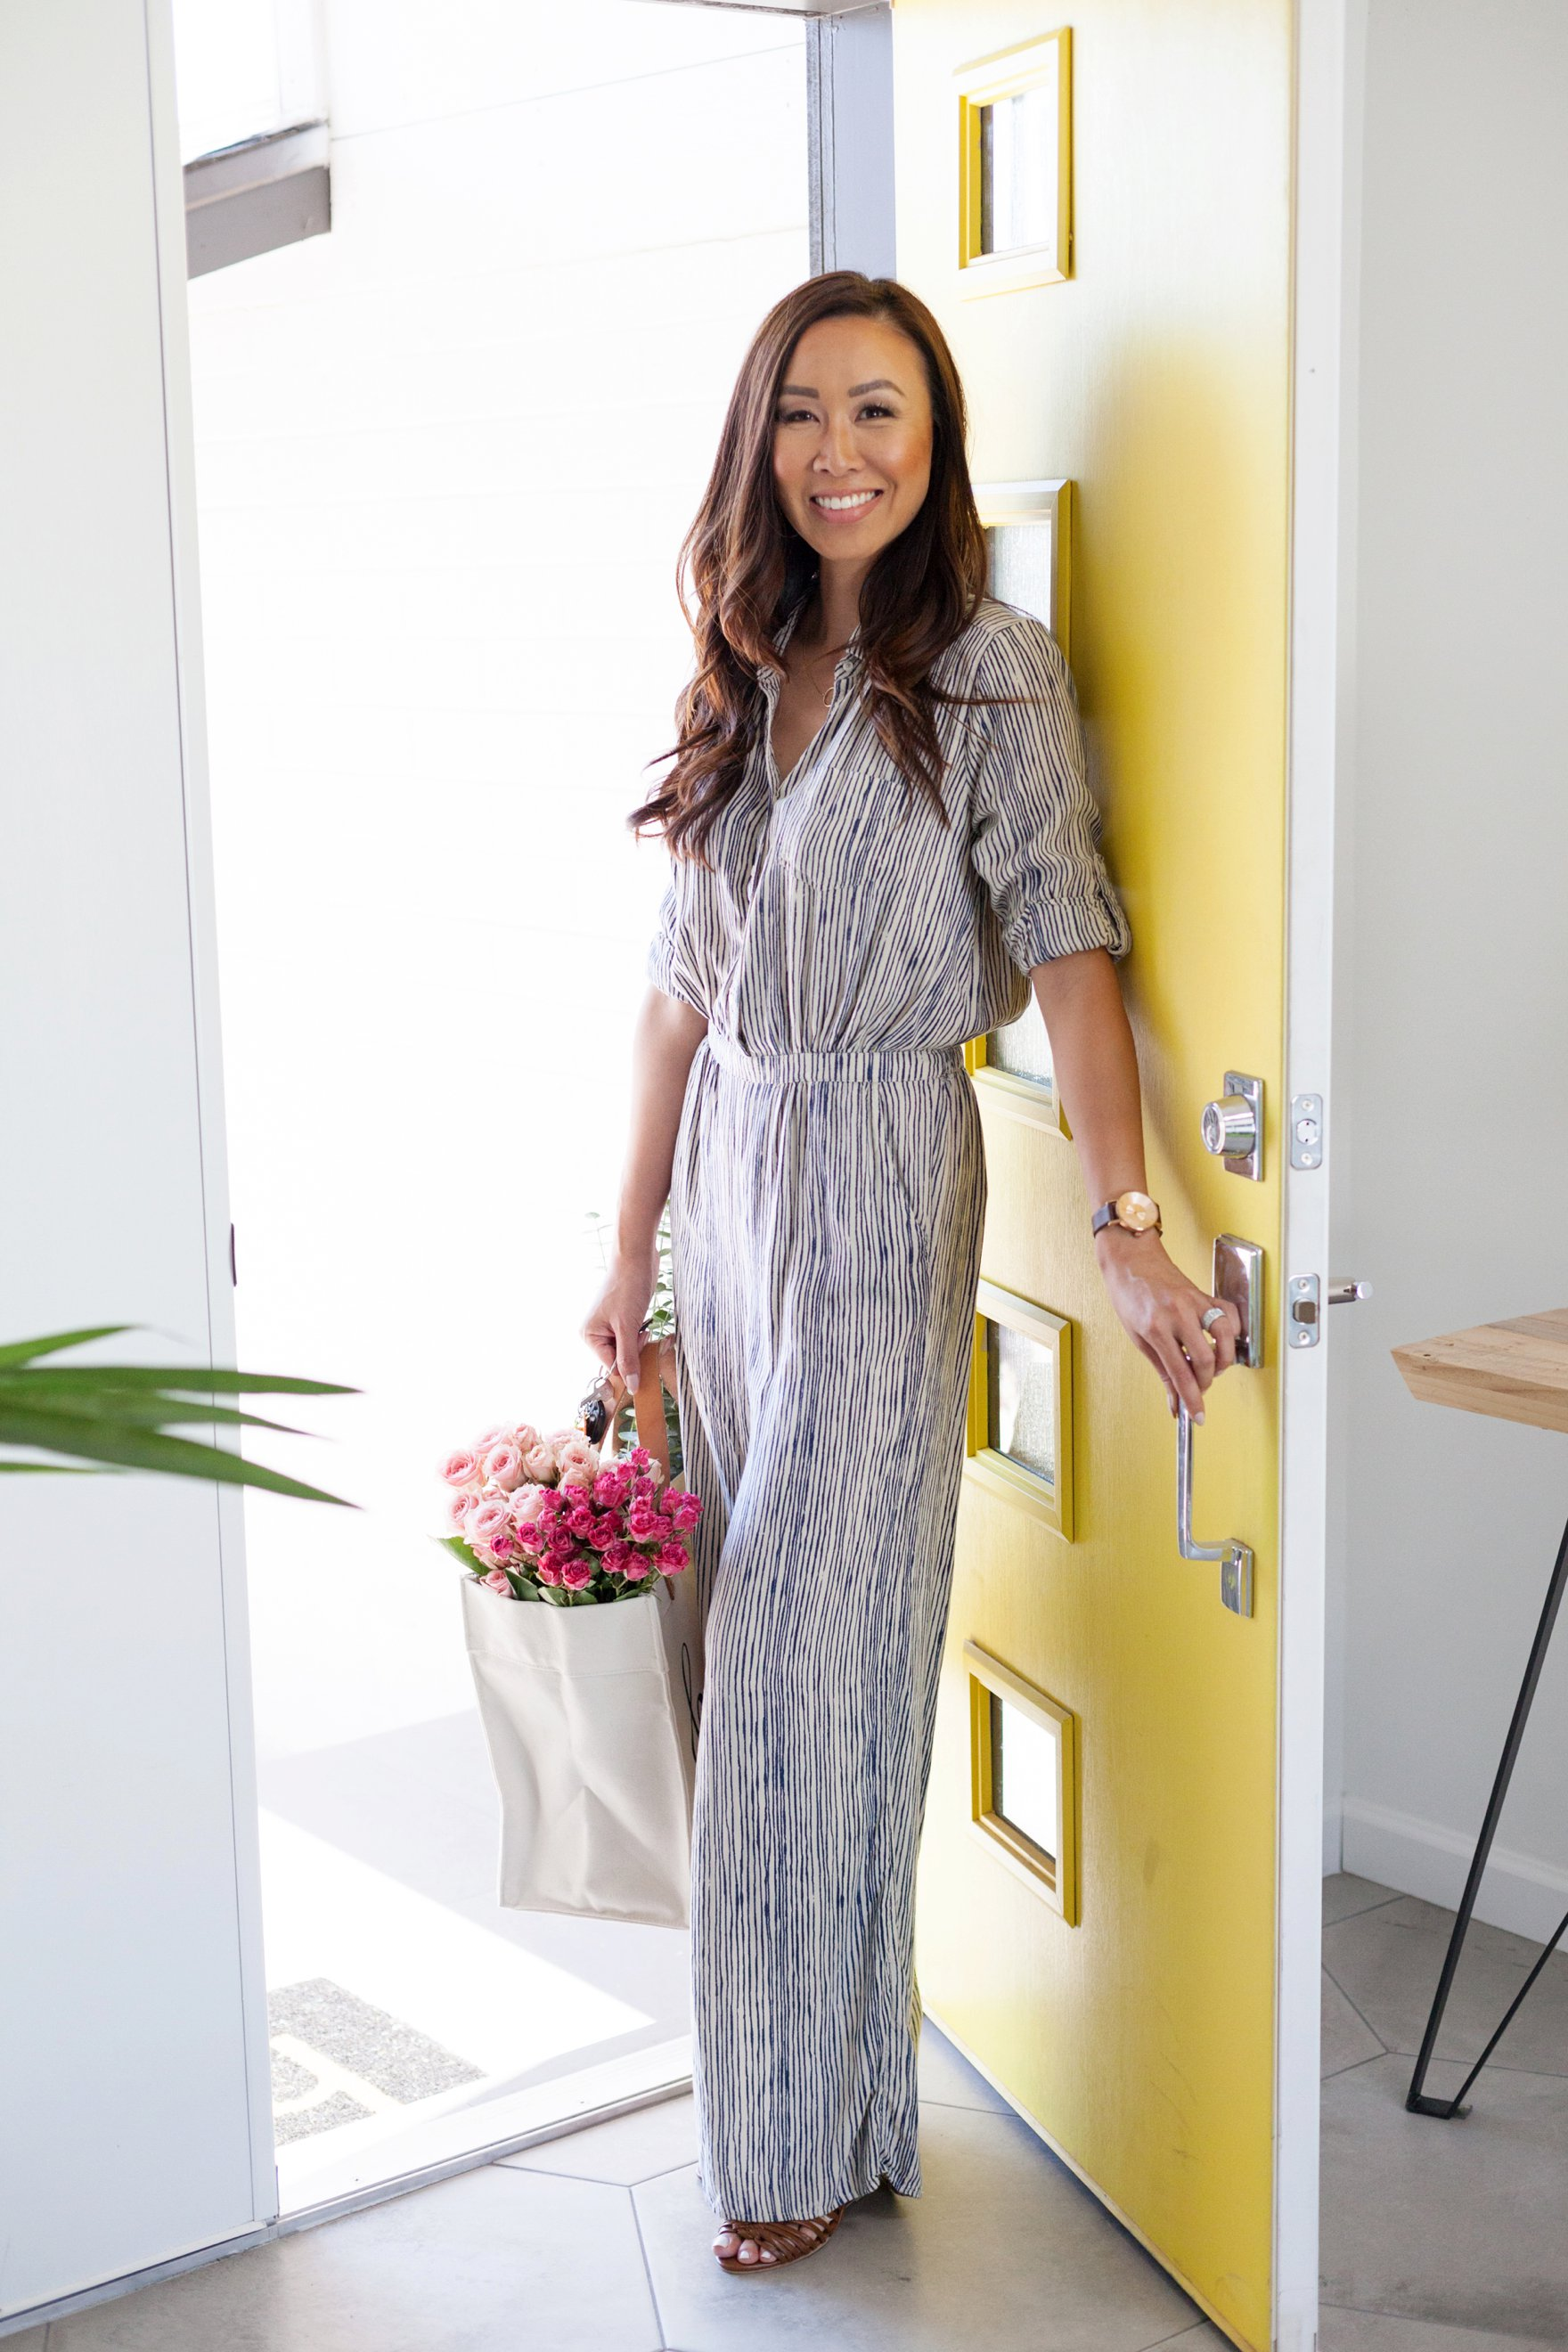 yellow front door Diana Elizabeth blogger holding florals walking in